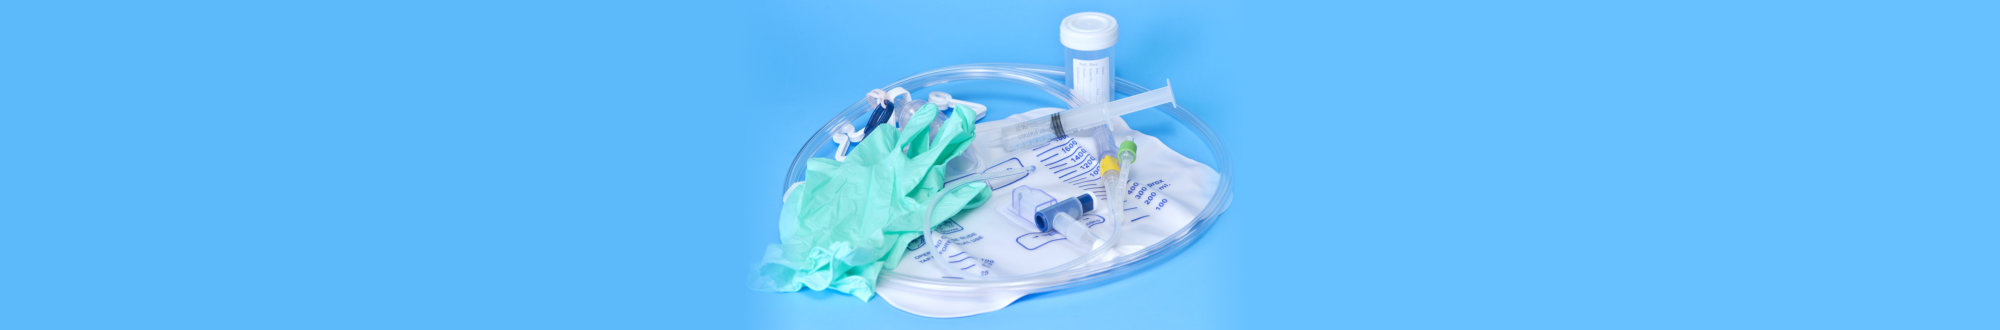 foley catheter and drainage bag with sterile gloves and specimen container